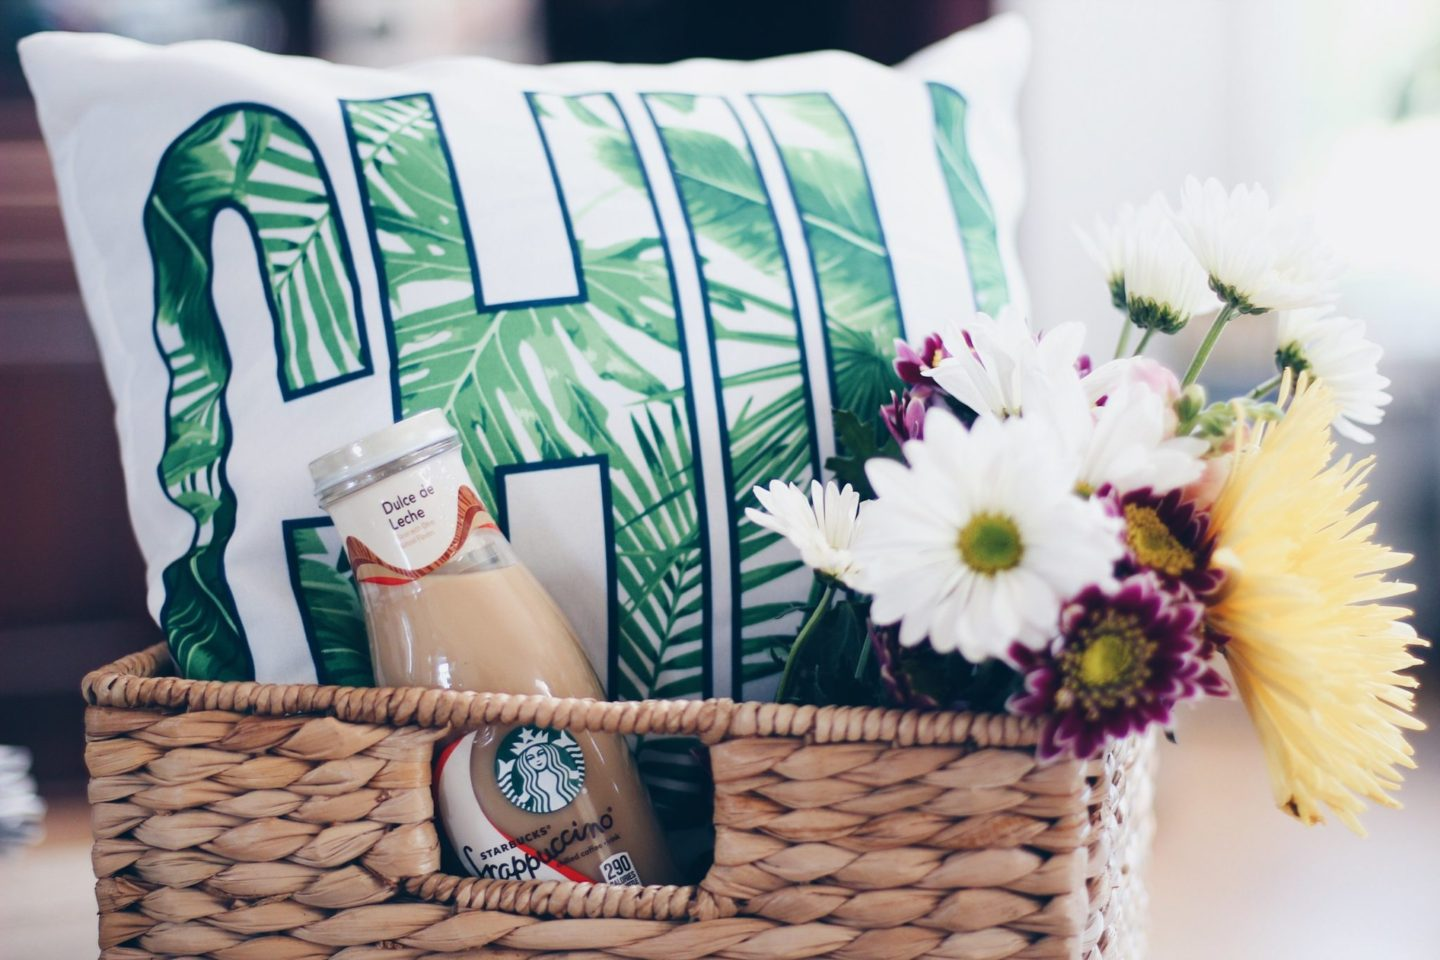 Tips & Tricks for the Perfect Summer Picnic